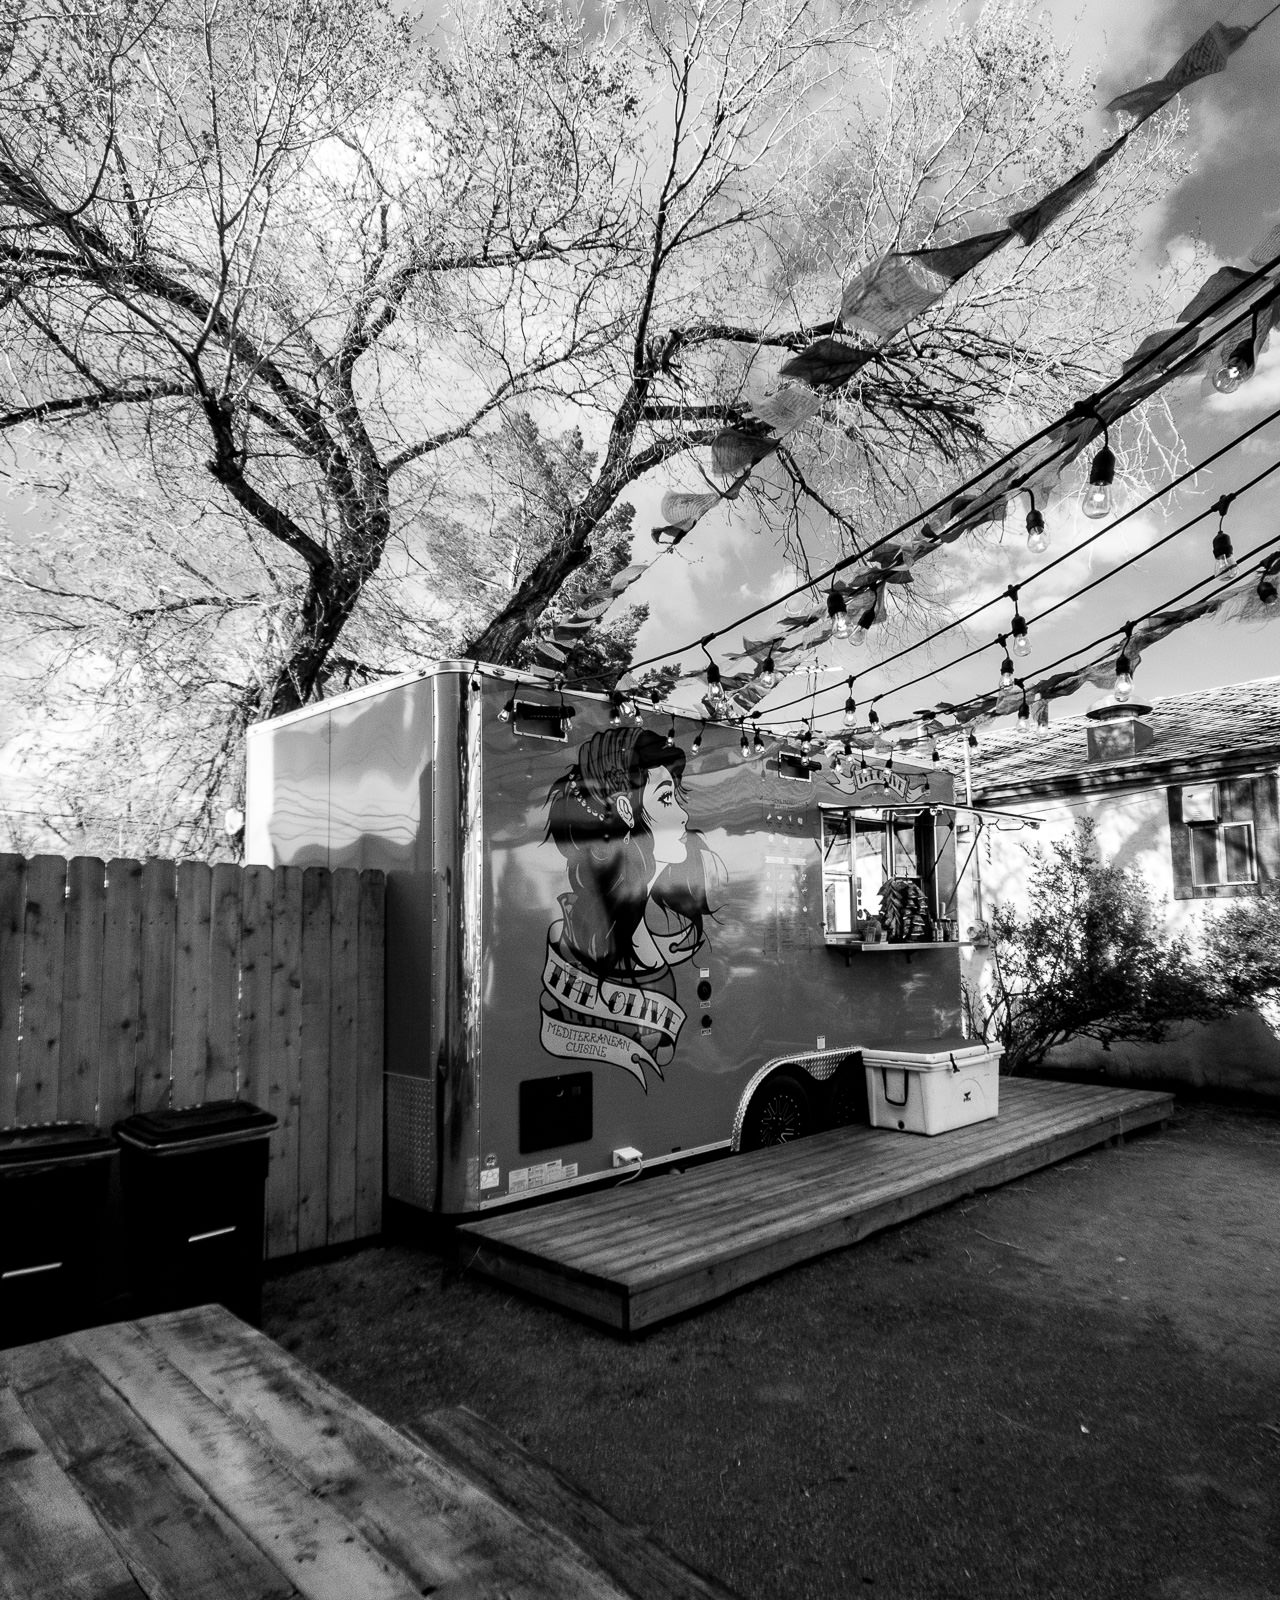 Day 151- 365 Day B&W Photo Challenge - The Olive Food Cart in Buena Vista, Colorado - Google Pixel 3, Moment Tele Lens - Acros R Film Simulation